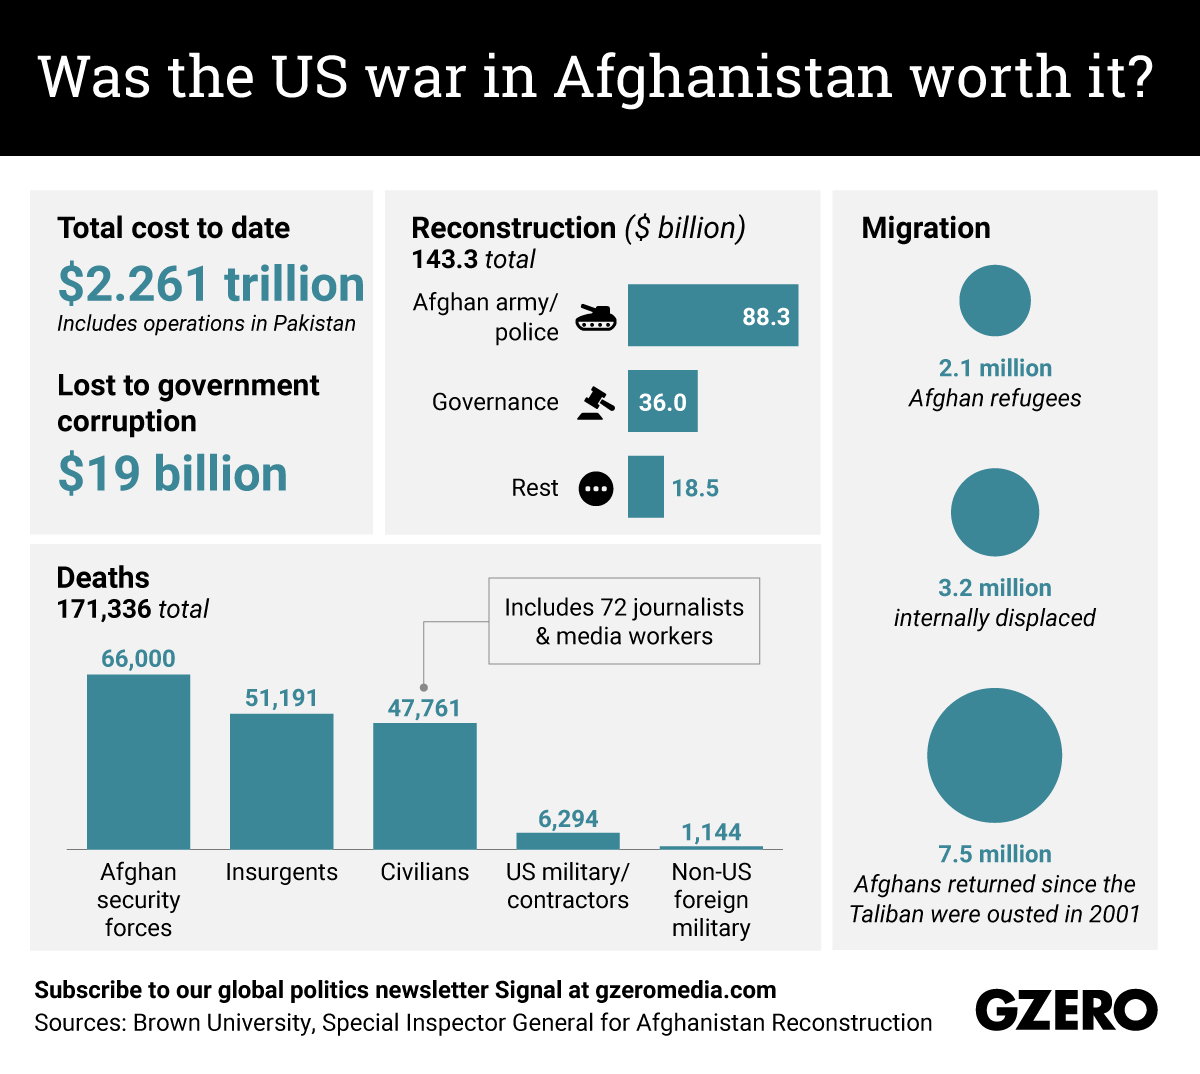 The Graphic Truth: Was the US war in Afghanistan worth it?